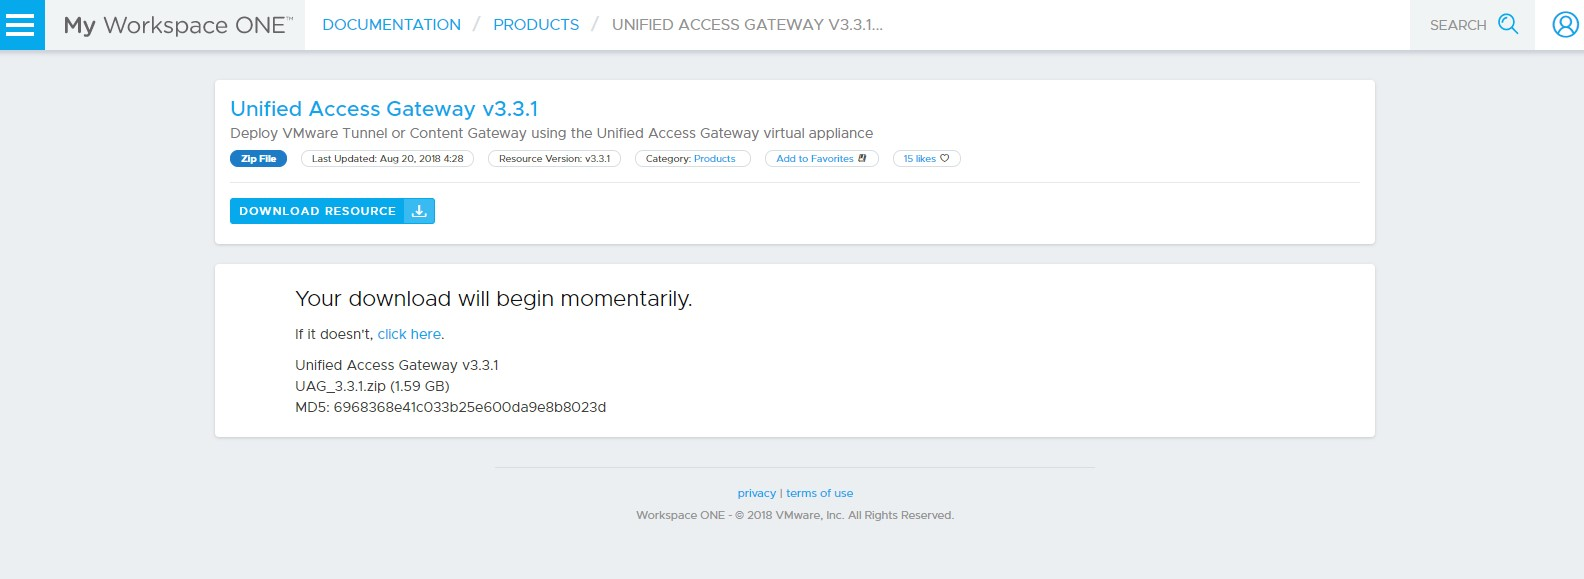 Upgrade Vmware Airwatchworkspace One From Version 91 To 96 And